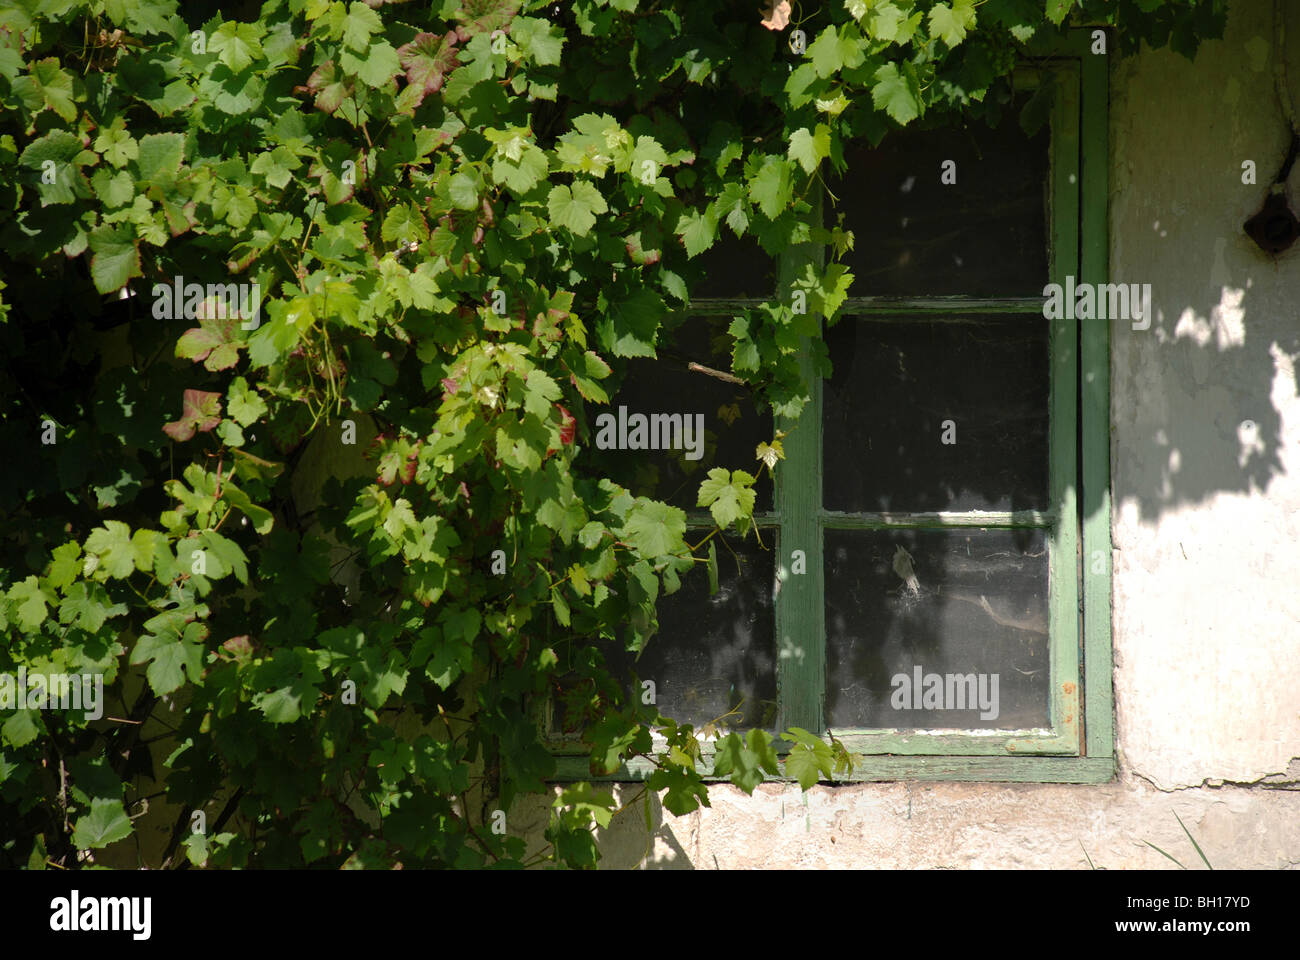 grapevine plant growing on a barn - Stock Image